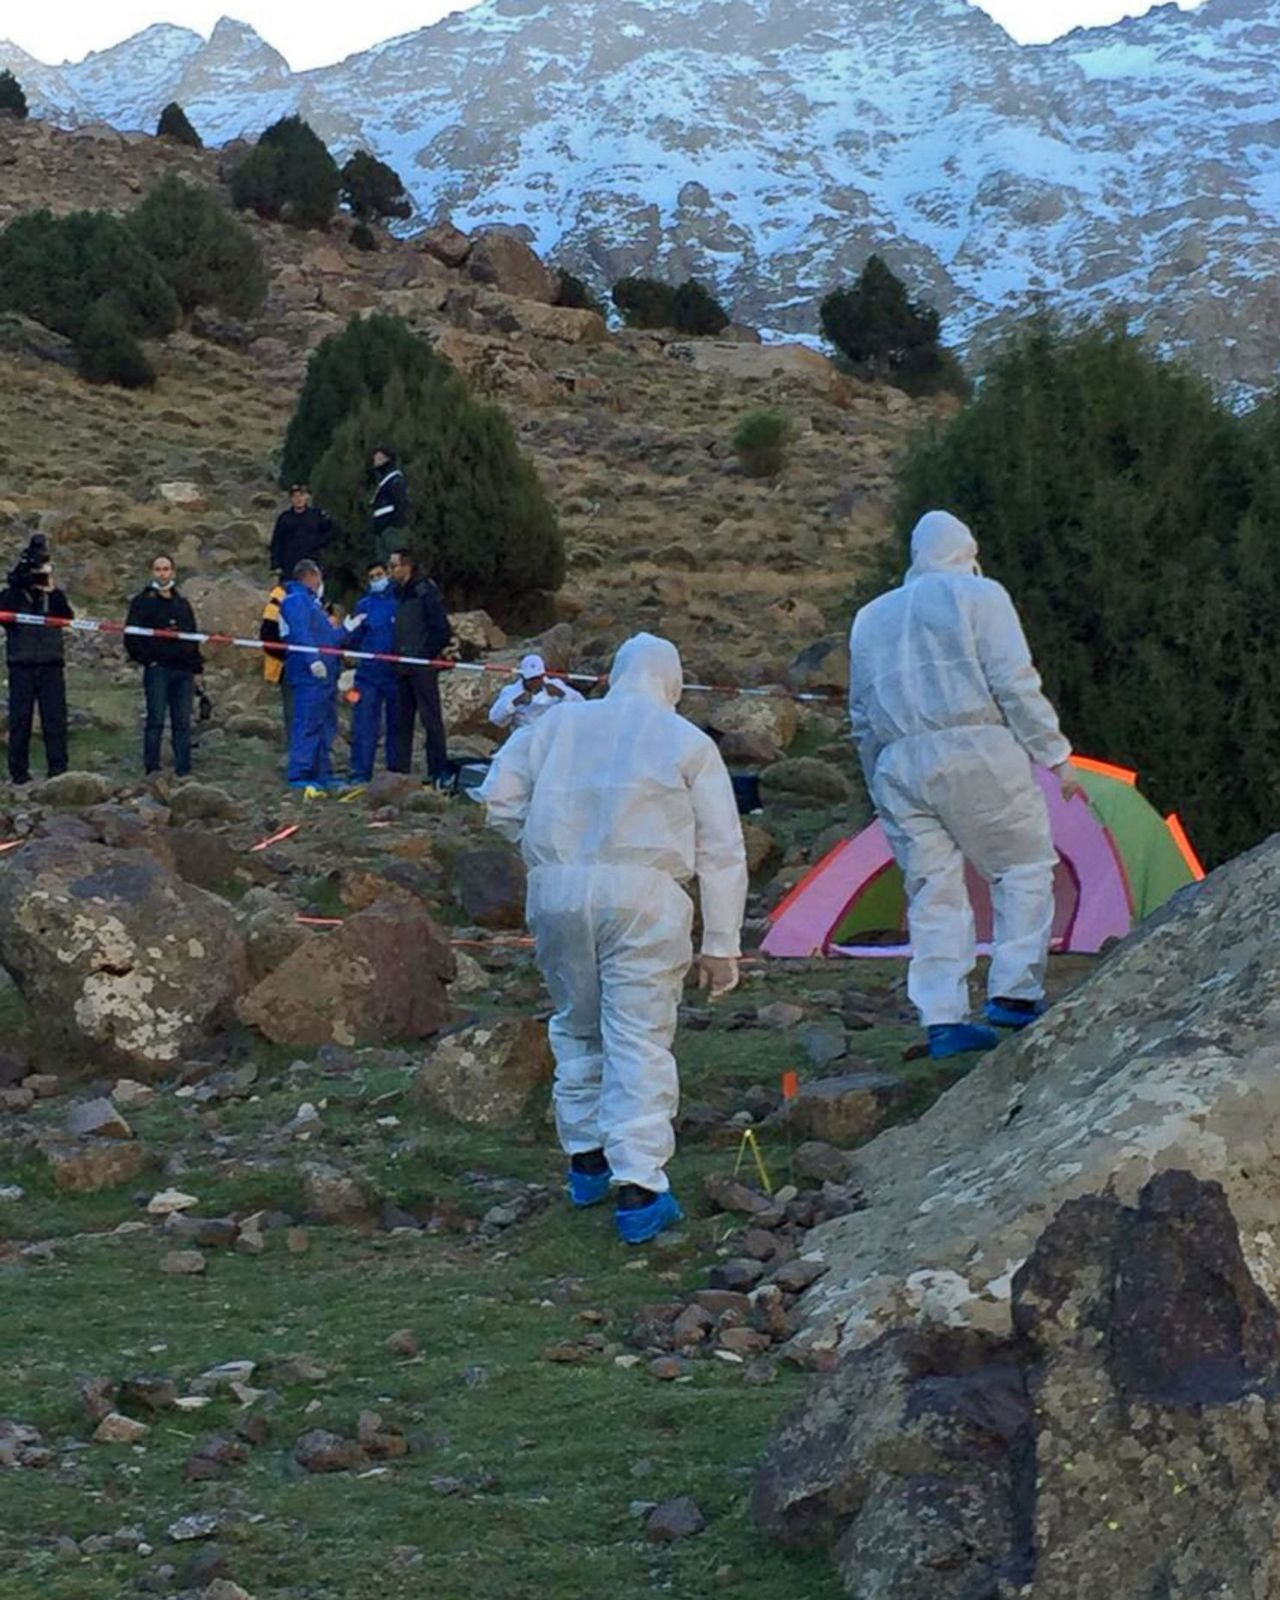 Scandinavian tourists found stabbed to death in Morocco's